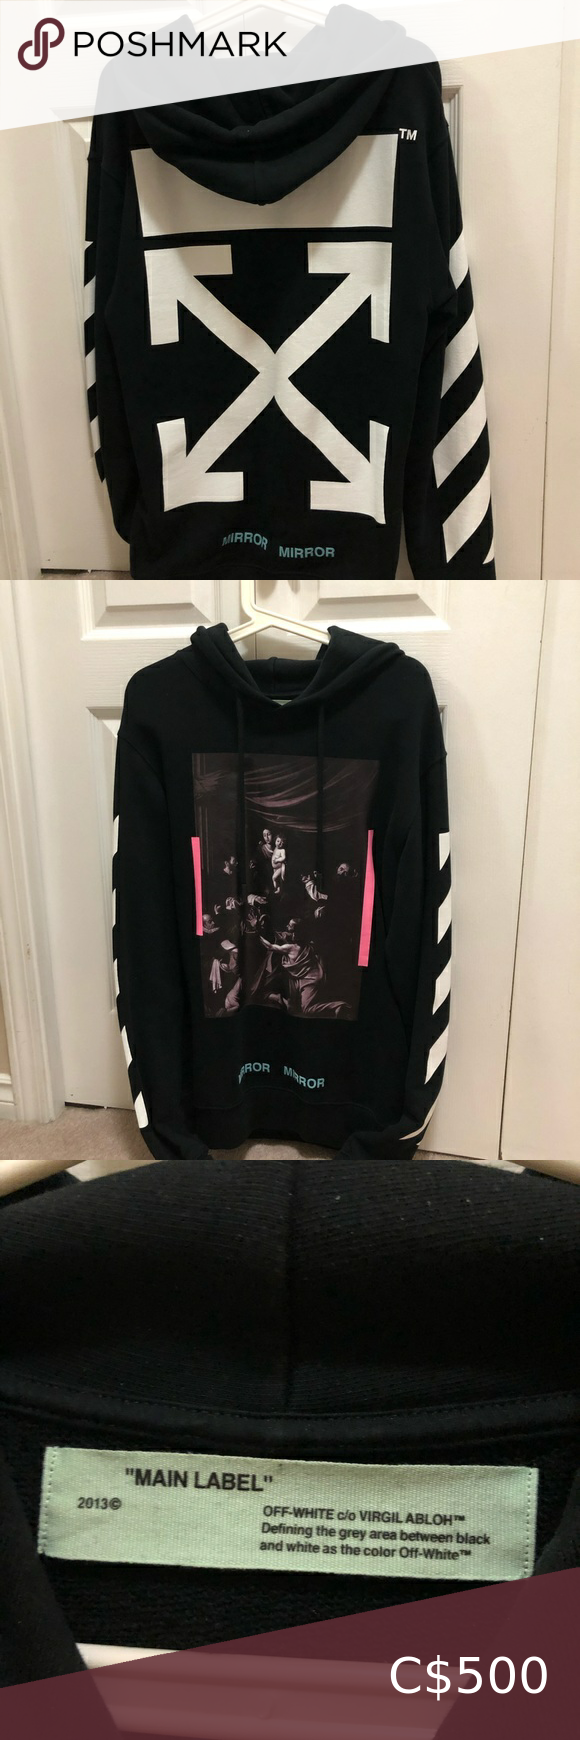 Authentic Off White Mirror Mirror Hoodie 100 Authentic Got It From Ssense Size Small Condition 10 10 No Pilling No Peeli Mirror Hoodie Hoodies Clothes Design [ 1740 x 580 Pixel ]